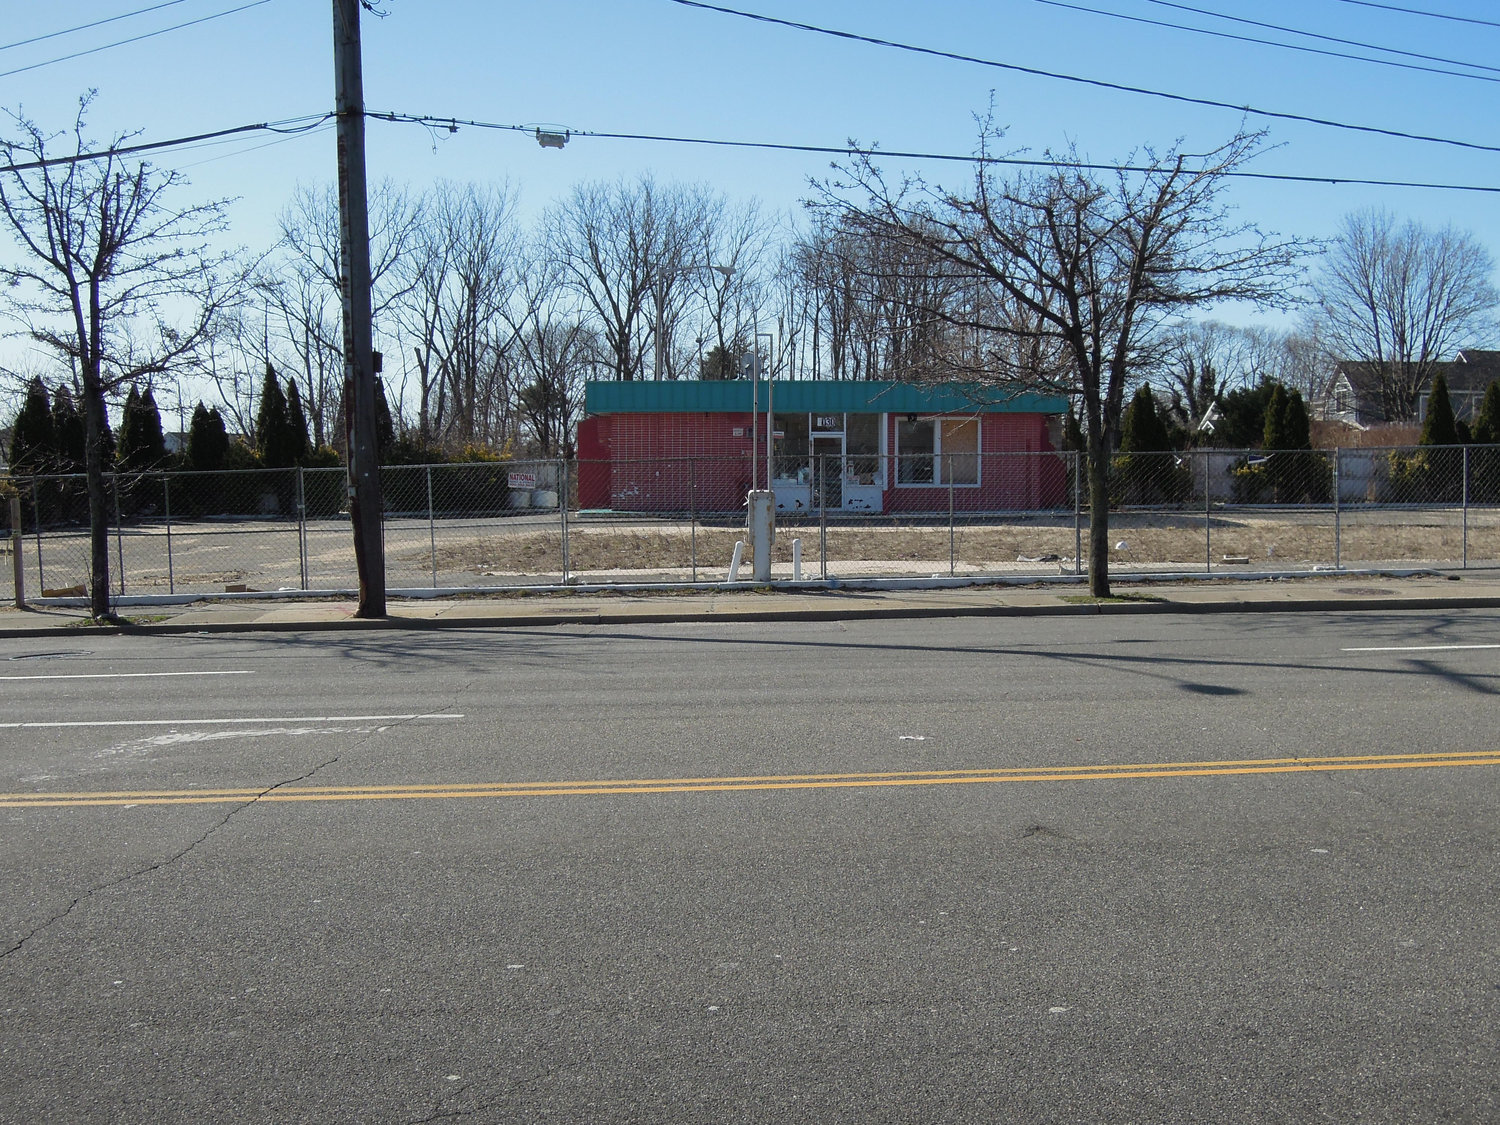 Seaford residents are concerned that this abandoned gas station, at 4030 Merrick Road, may become a Bolla station and convenience store.